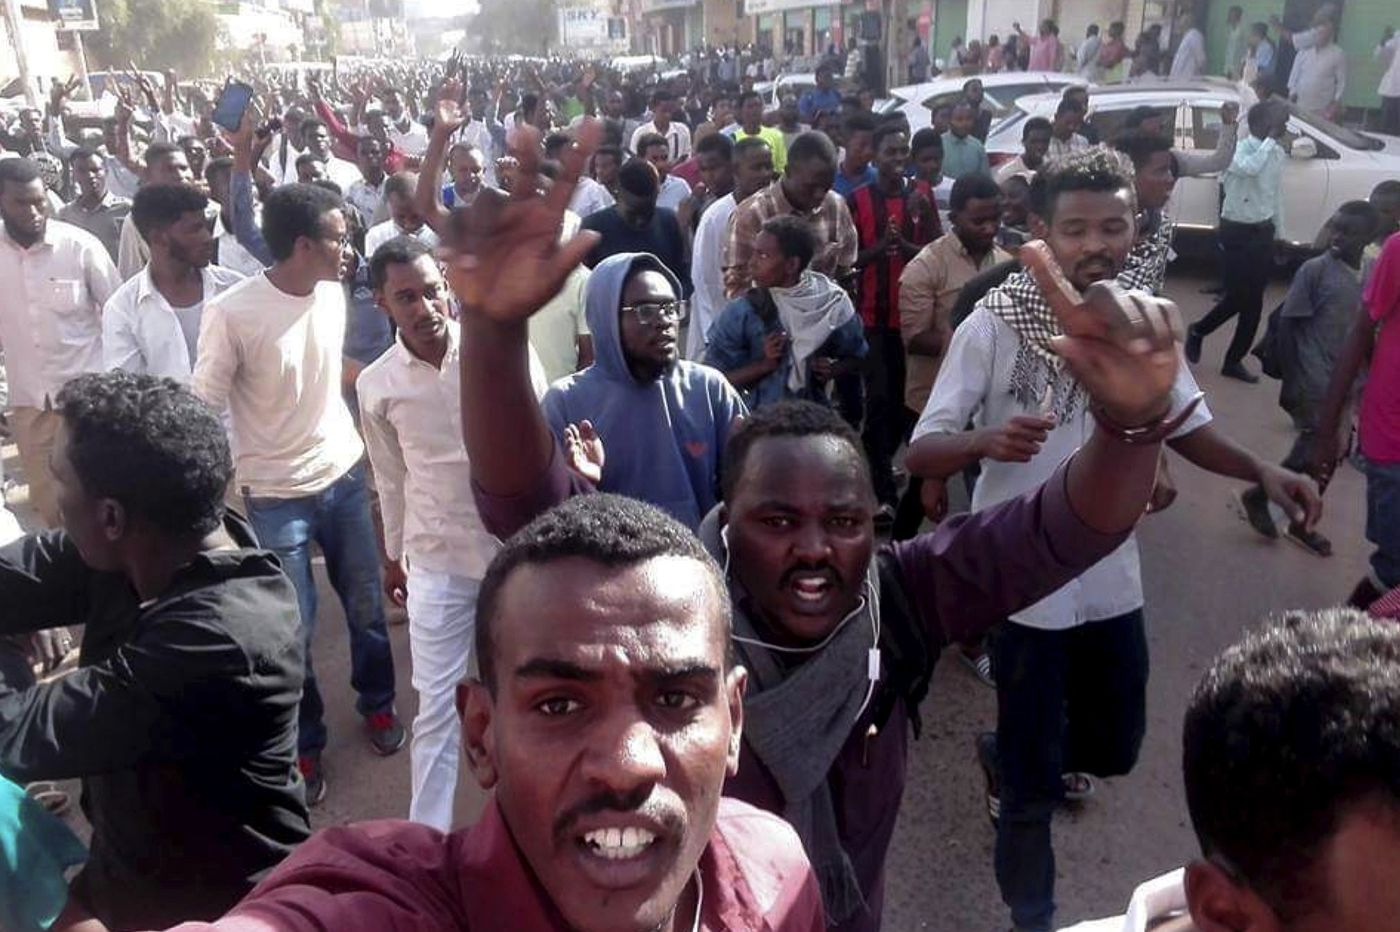 Clashes erupt as Sudanese march on presidential palace